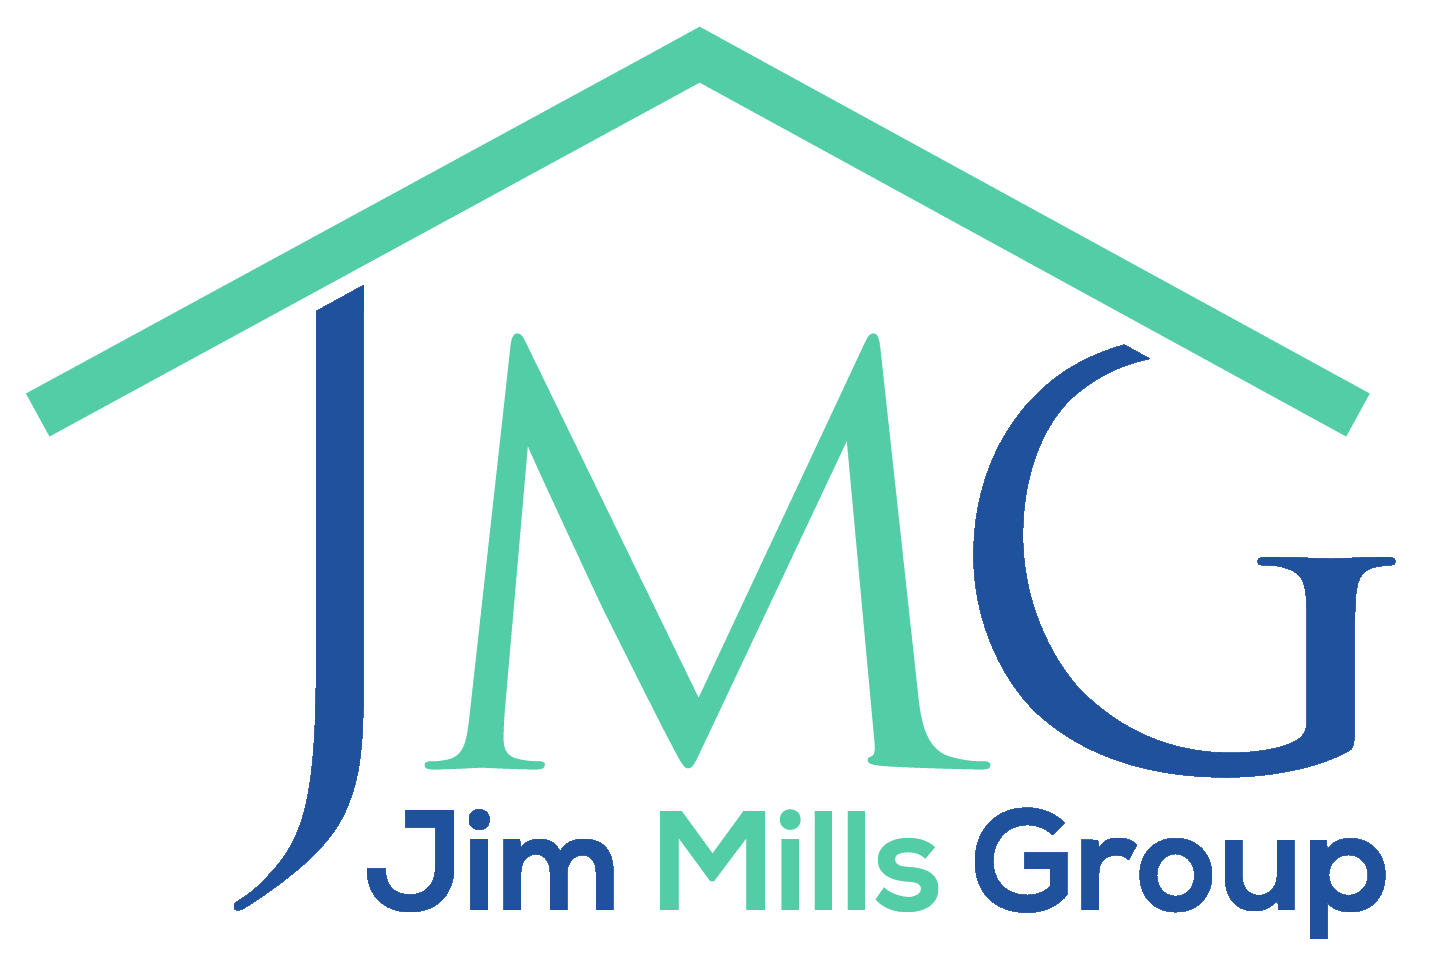 Jim Mills Group Logo